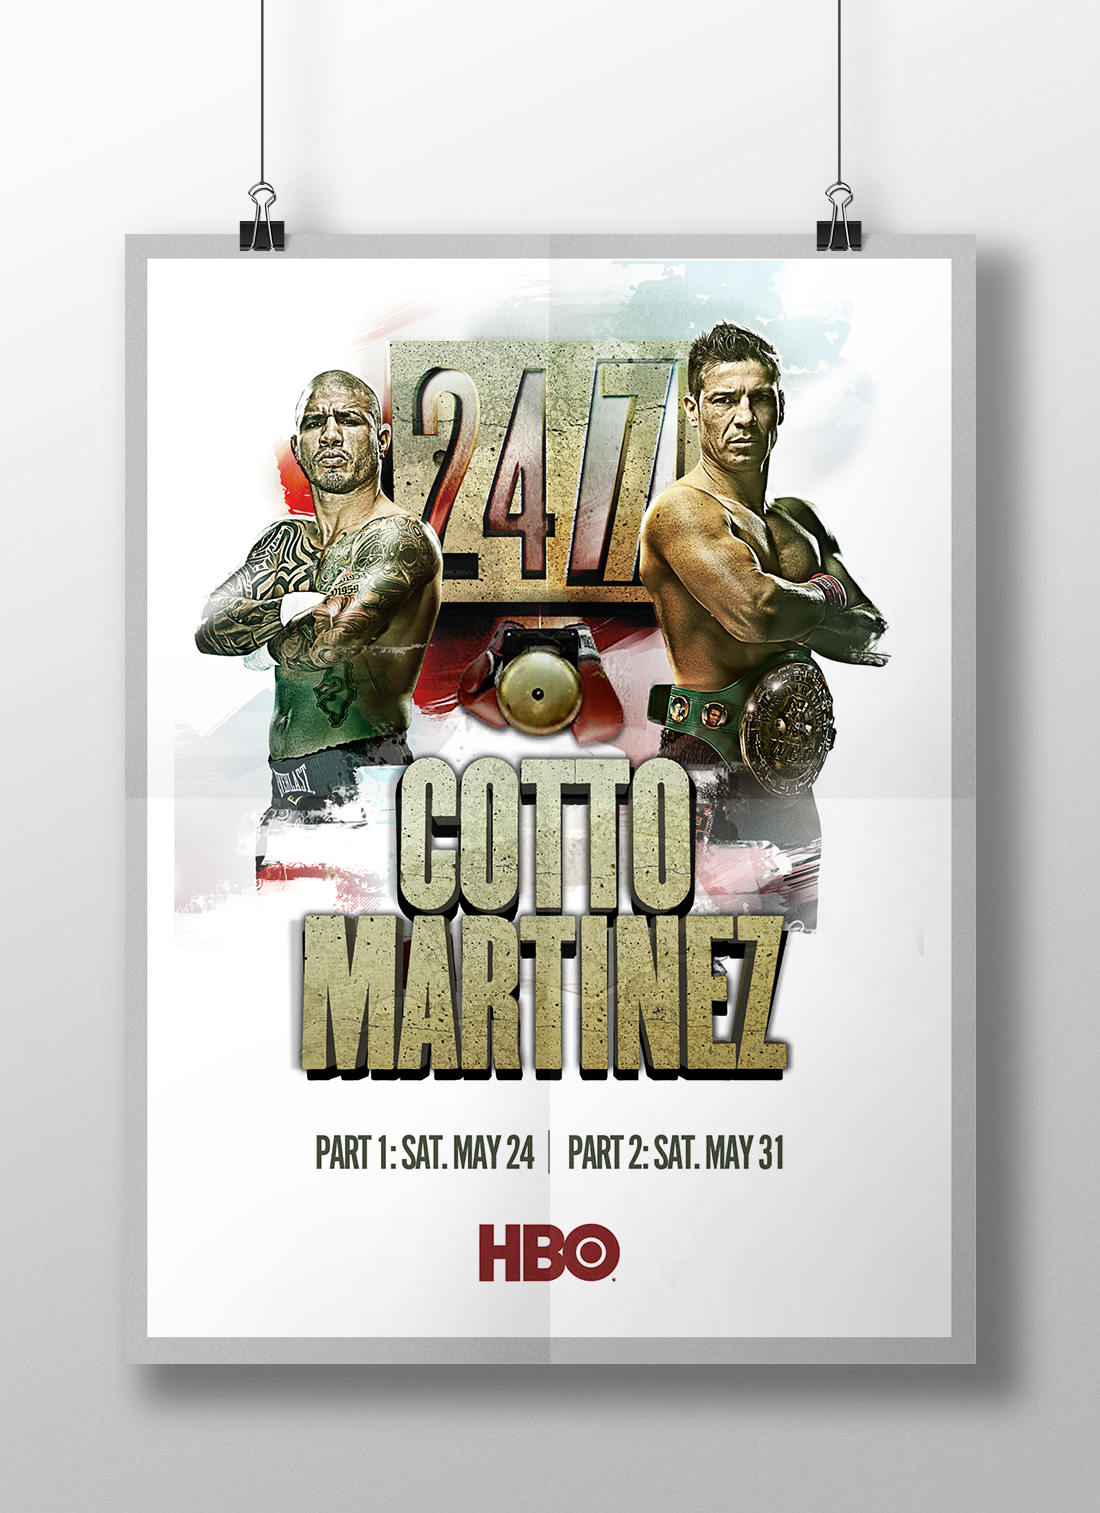 HBO Sport | Cotto Martinez | Graphic Design | Denver, CO